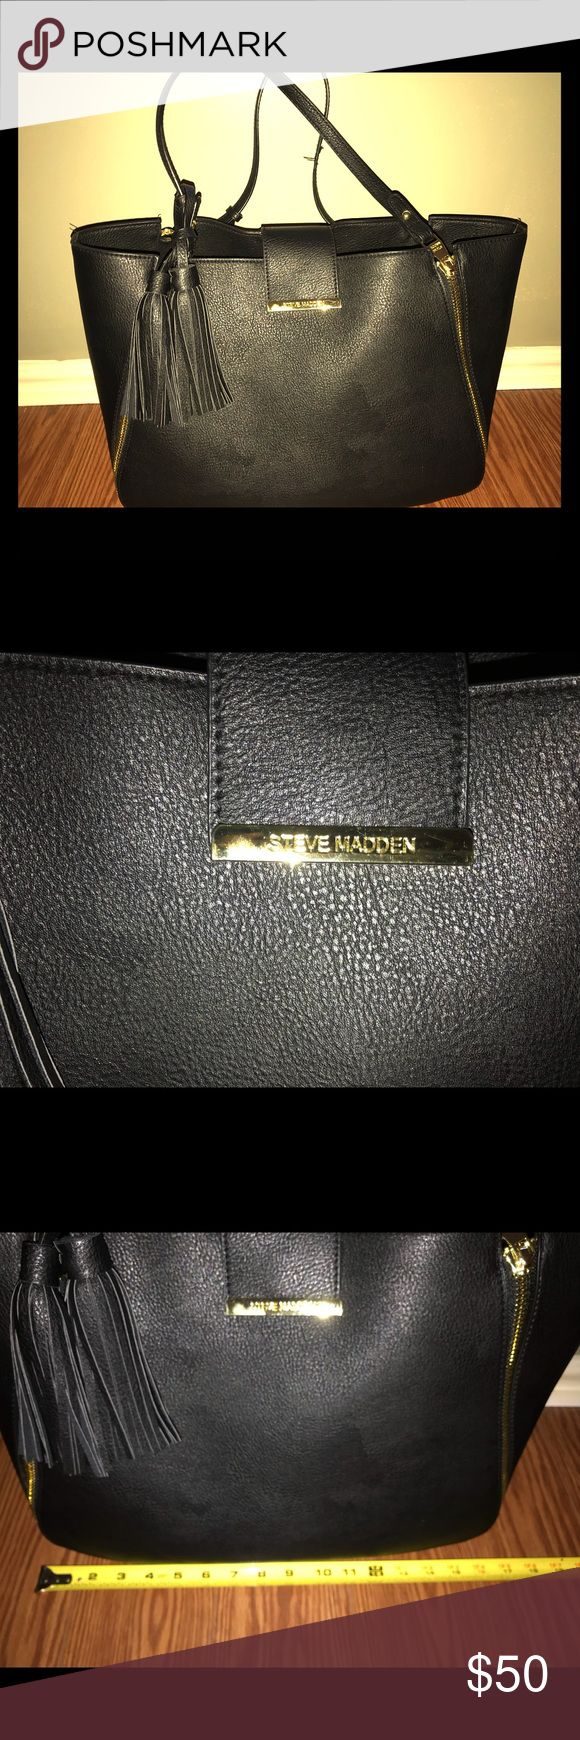 Steve Madden Handbag Black with gold accents. The strap has normal wear to it , not bad at all. Overall good condition. Only used a month . Steve Madden Bags Shoulder Bags